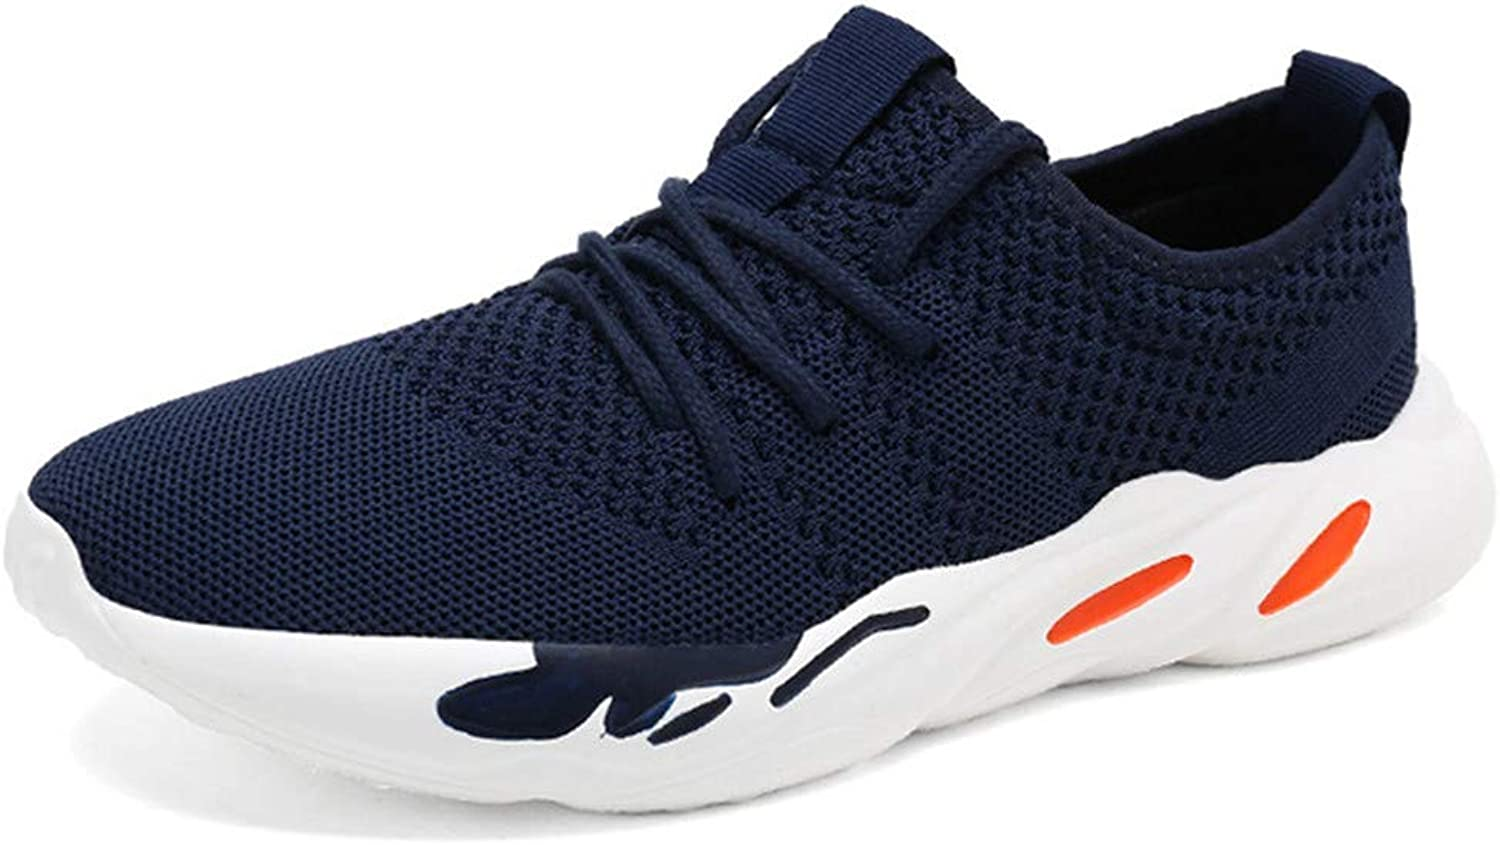 Männer leichte Athletic Turnschuhe Lace-Up Lace-Up Lace-Up Mesh Distance Running Schuhe  1ffd3f